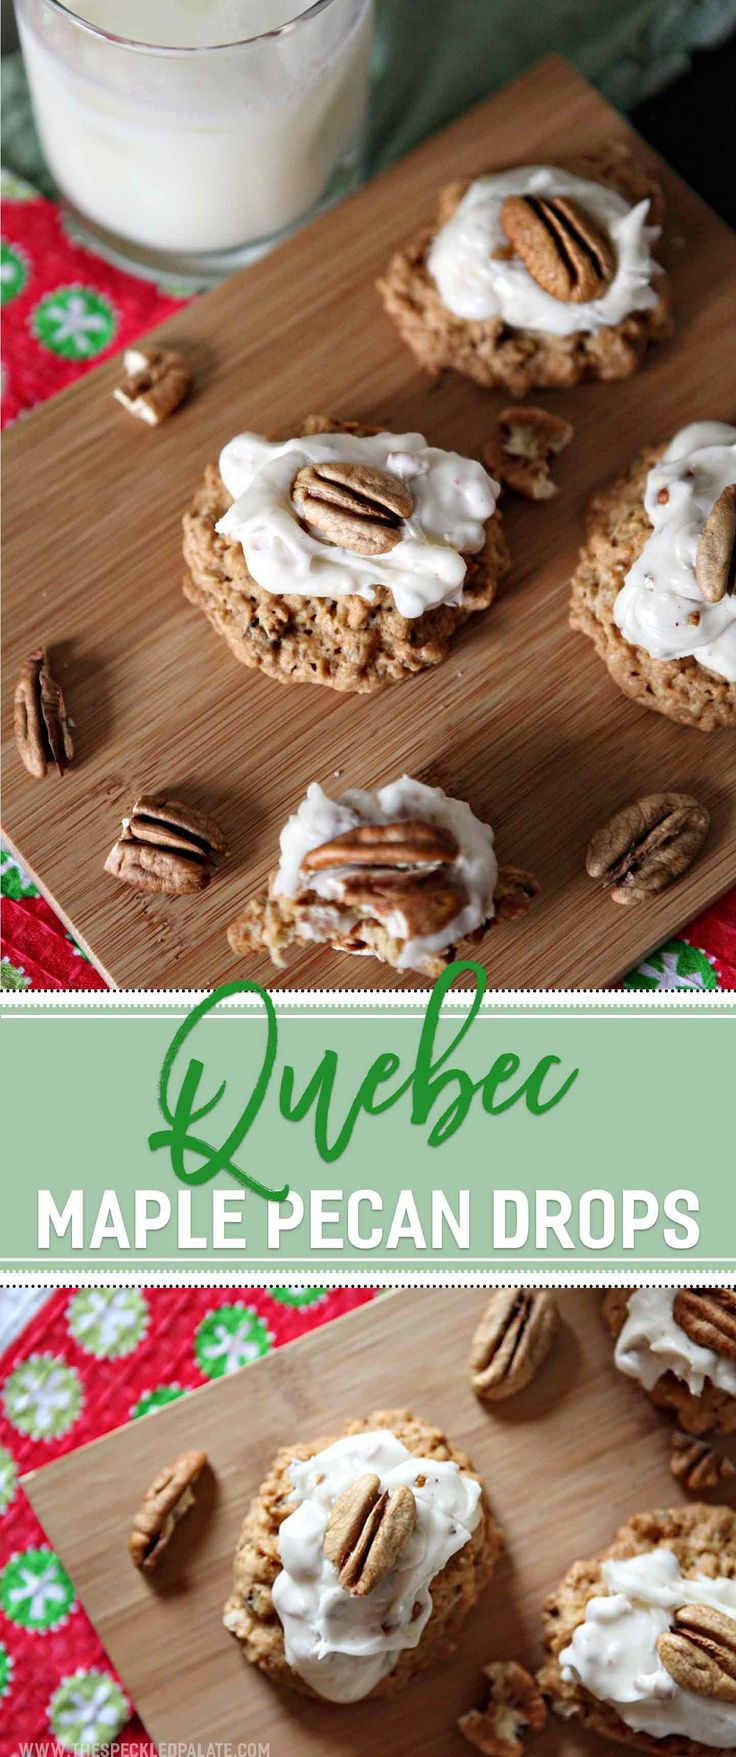 Quebec Maple Pecan Drops make a sweet treat for the holiday season! These simple drop cookies are packed with oats and pecans, then topped with a delightful Maple Pecan Frosting. Celebrating maple goodness and cozy desserts, Quebec Maple Pecan Drops are a perfect wintertime cookie served with a giant cup of milk and enjoyed by the fire in the company of friends and family.